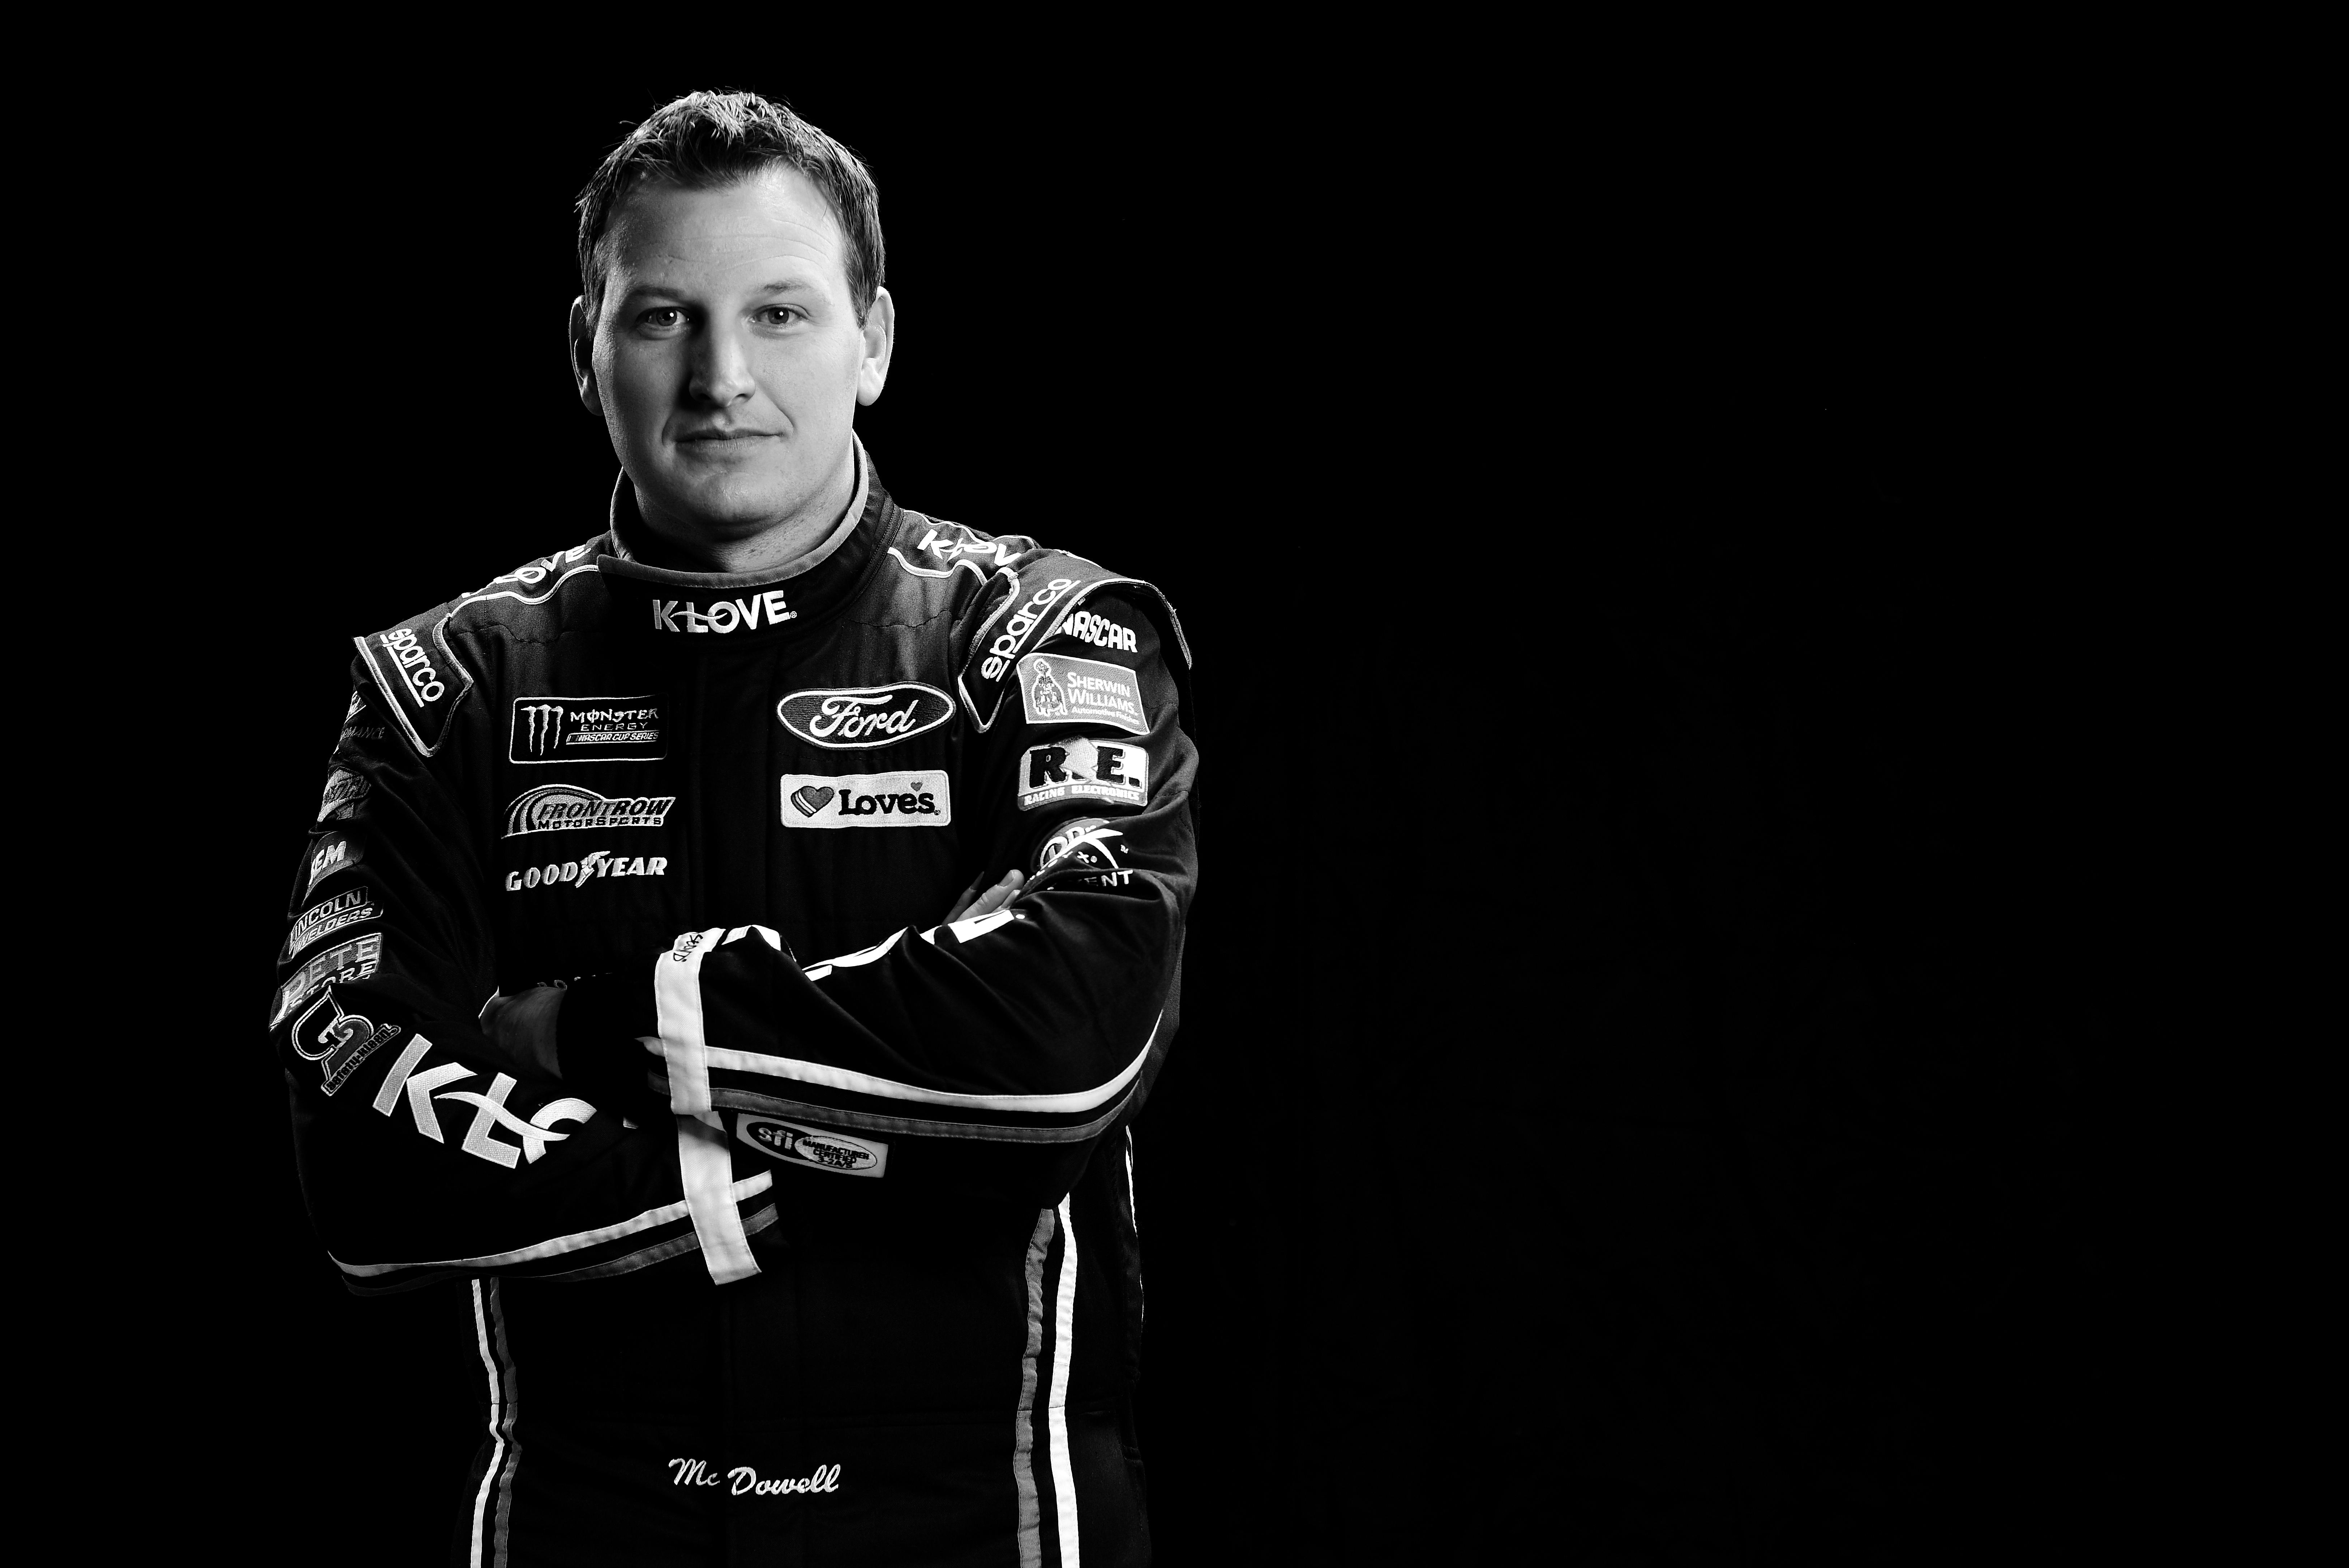 CHARLOTTE, NC - JANUARY 23: (EDITOR'S NOTE: This image has been converted to black and white.) Monster Energy NASCAR Cup Series driver Michael McDowell poses for a portrait during the NASCAR Media Tour at Charlotte Convention Center on January 23, 2018 in Charlotte, North Carolina. (Photo by Jared C. Tilton/Getty Images)